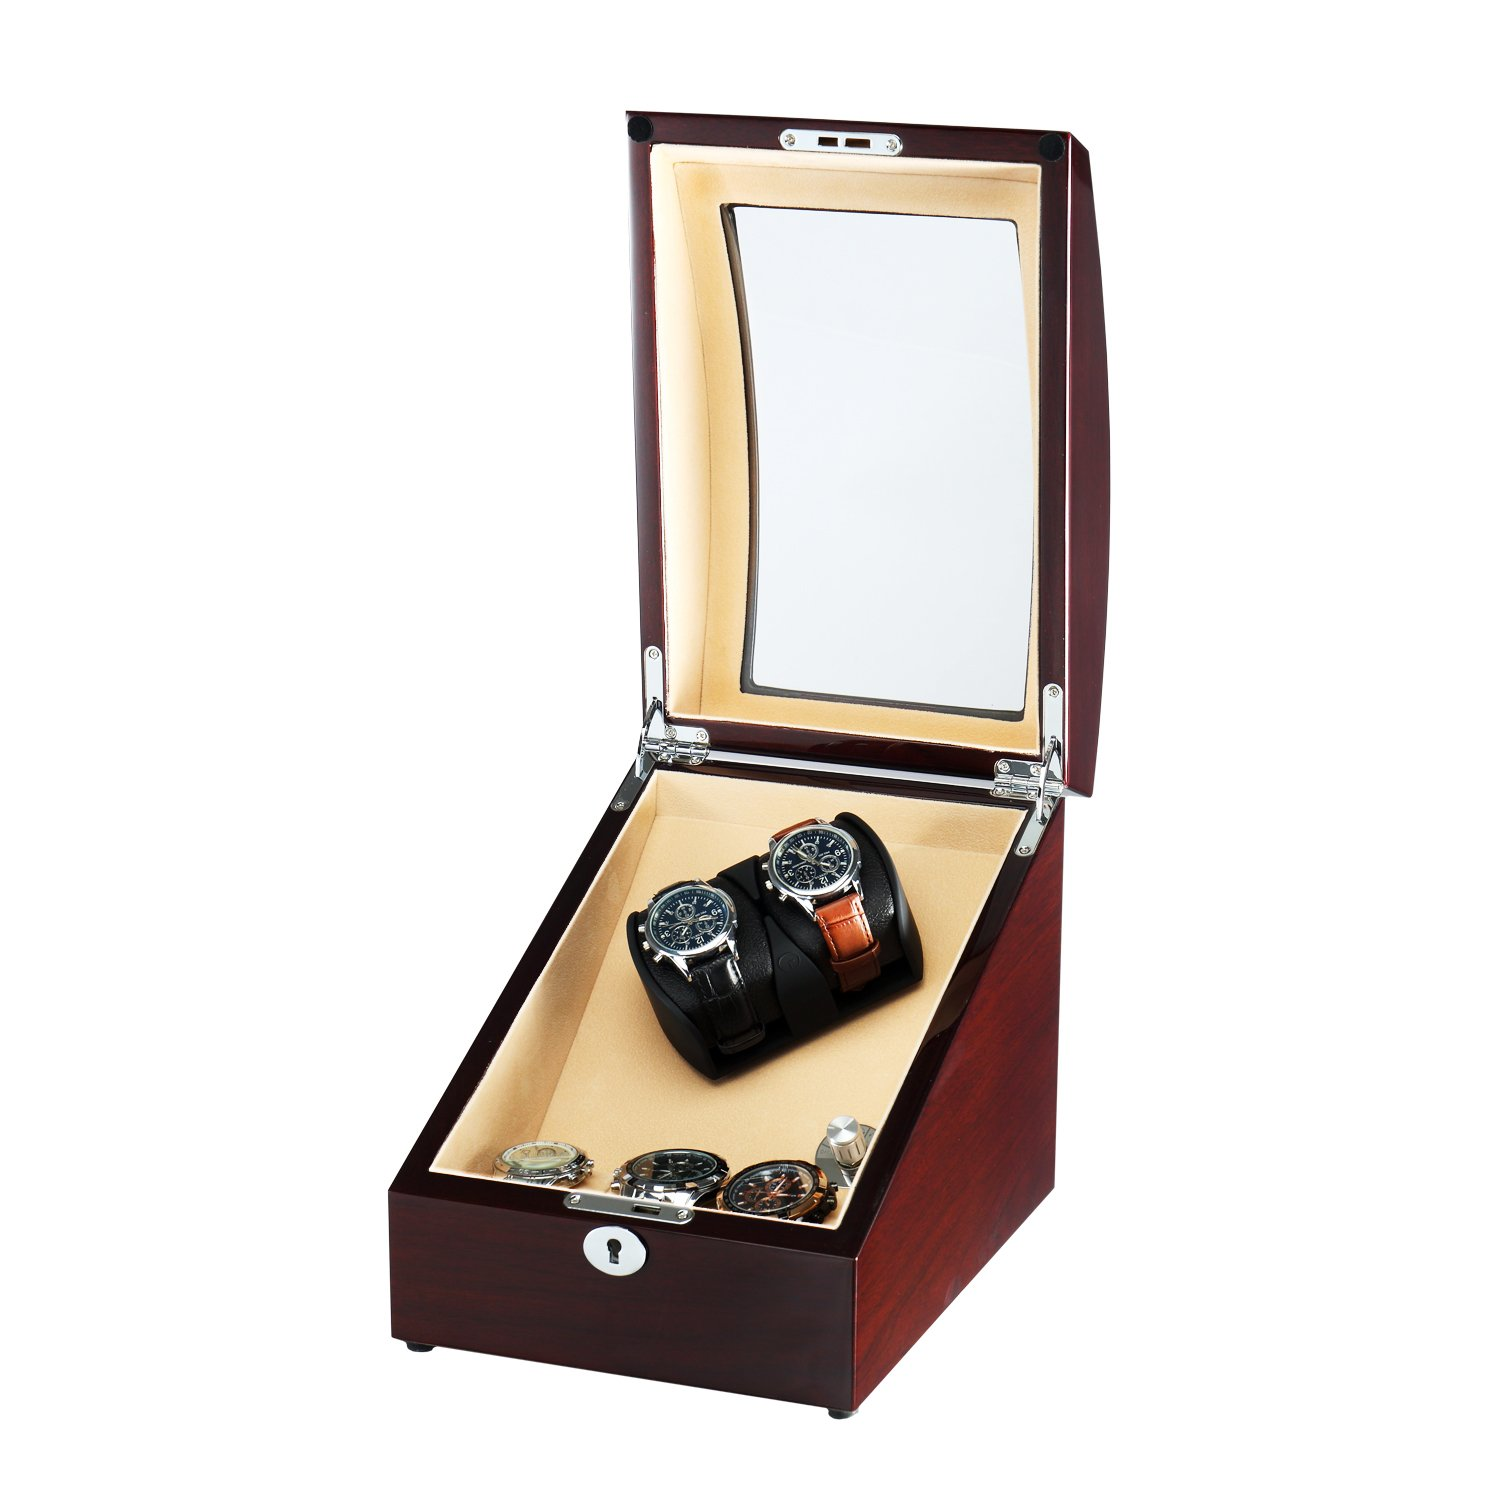 OLYMBROS Wooden Automatic Double Watch Winder with Storage Box for 2+3 watches